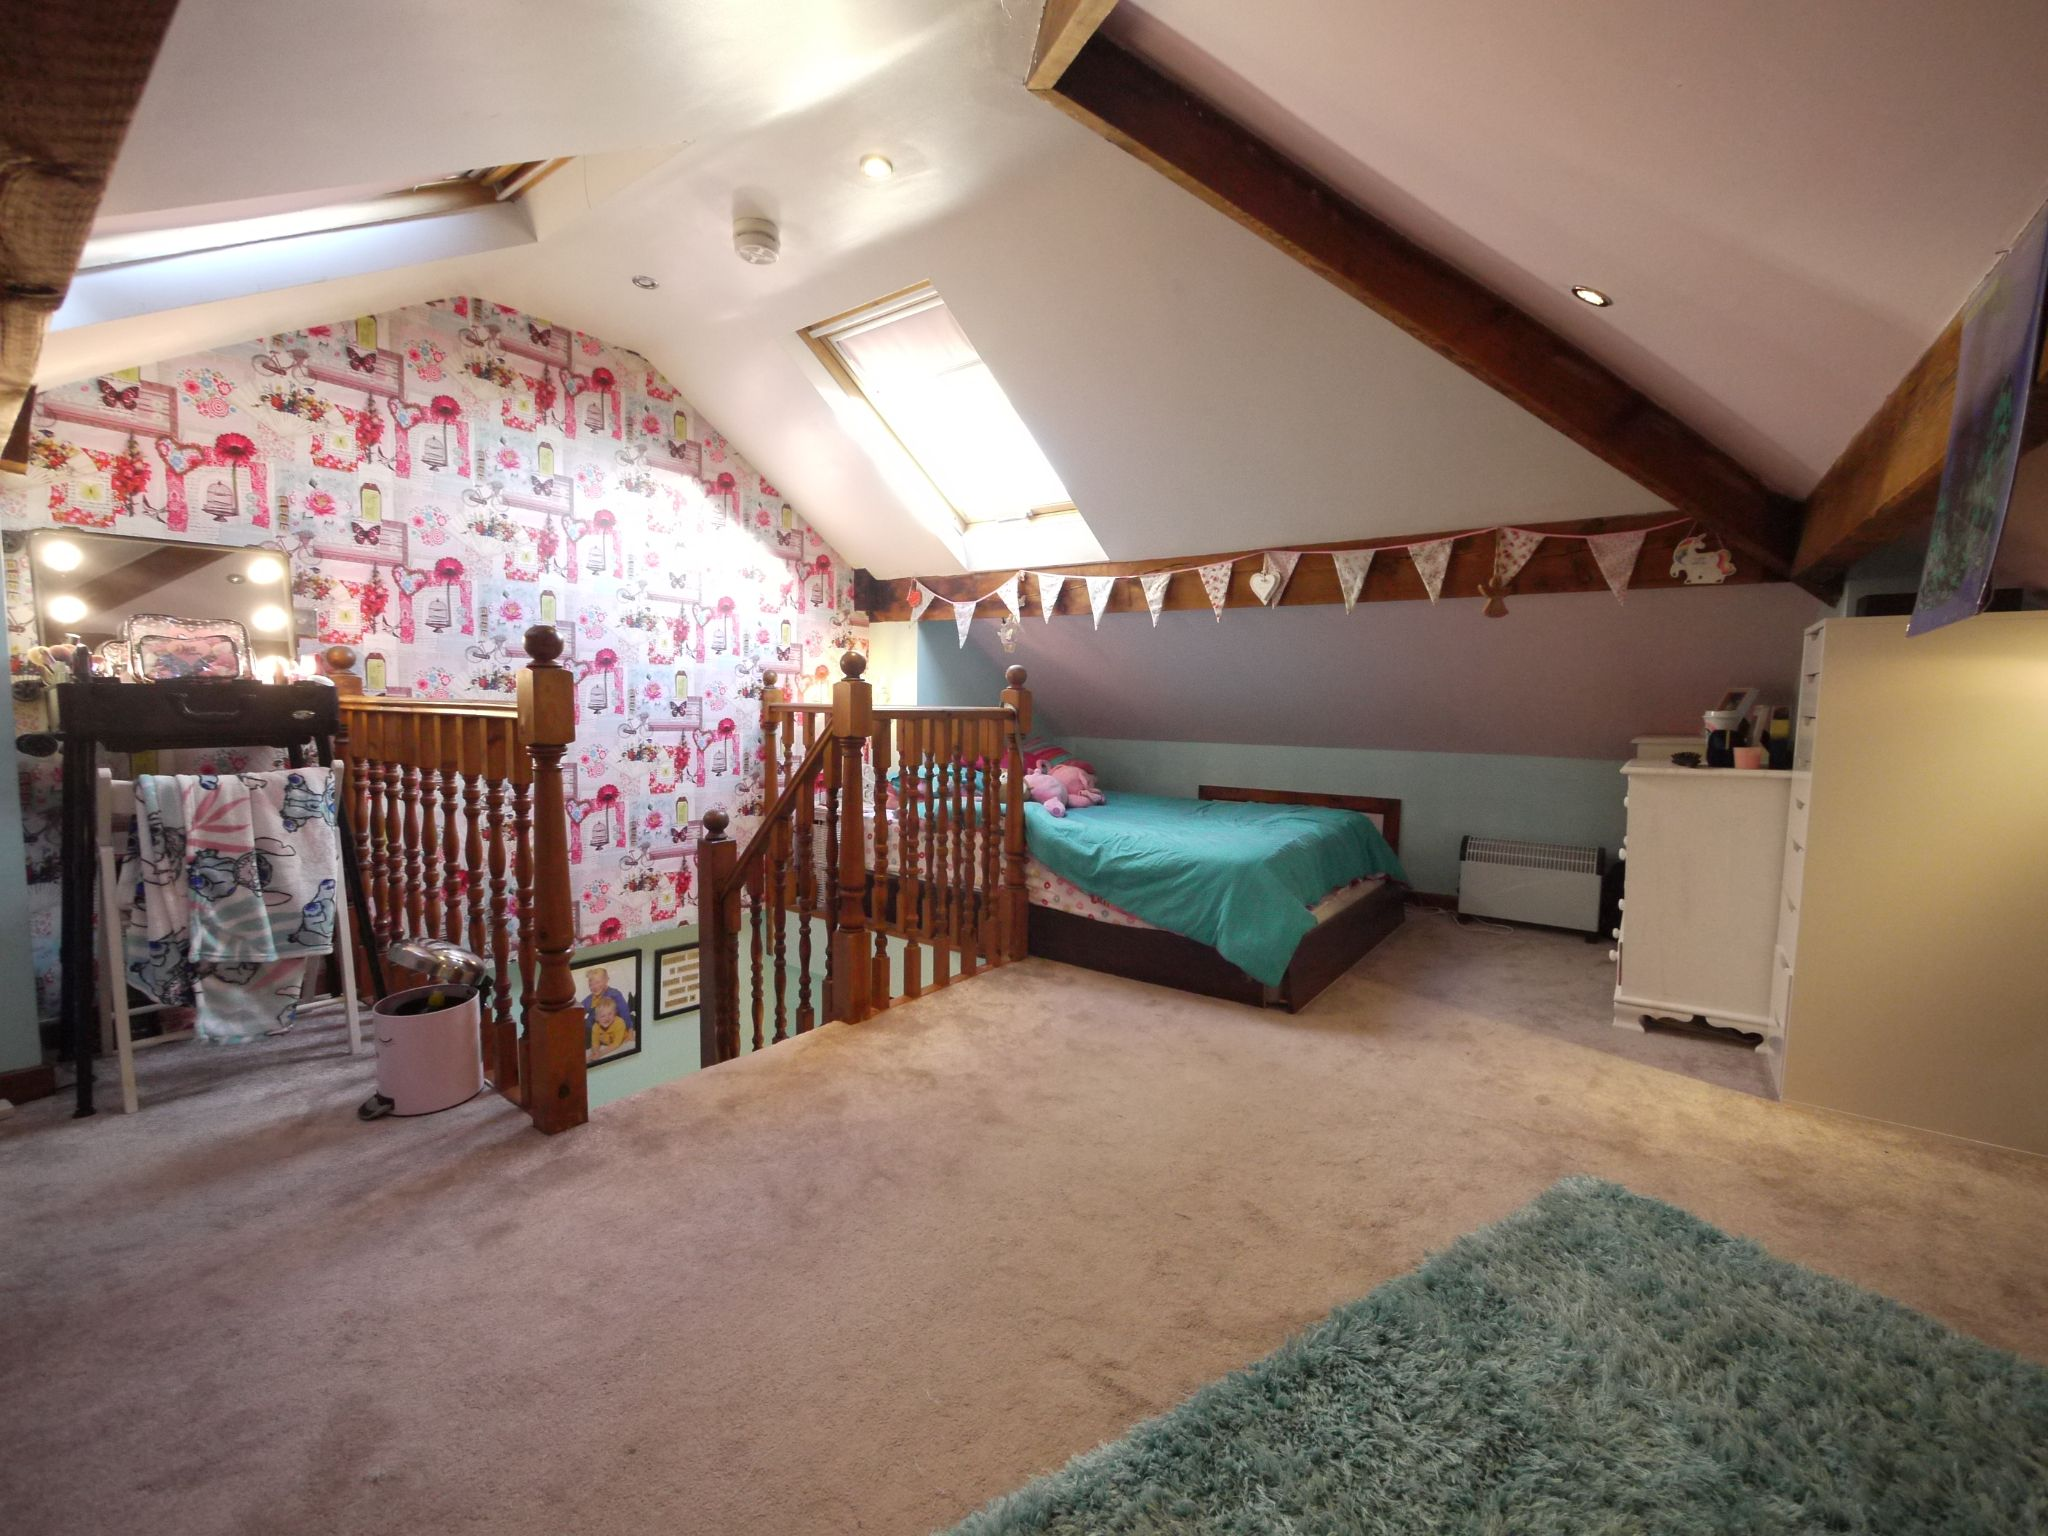 4 bedroom semi-detached house SSTC in Brighouse - Photograph 4.